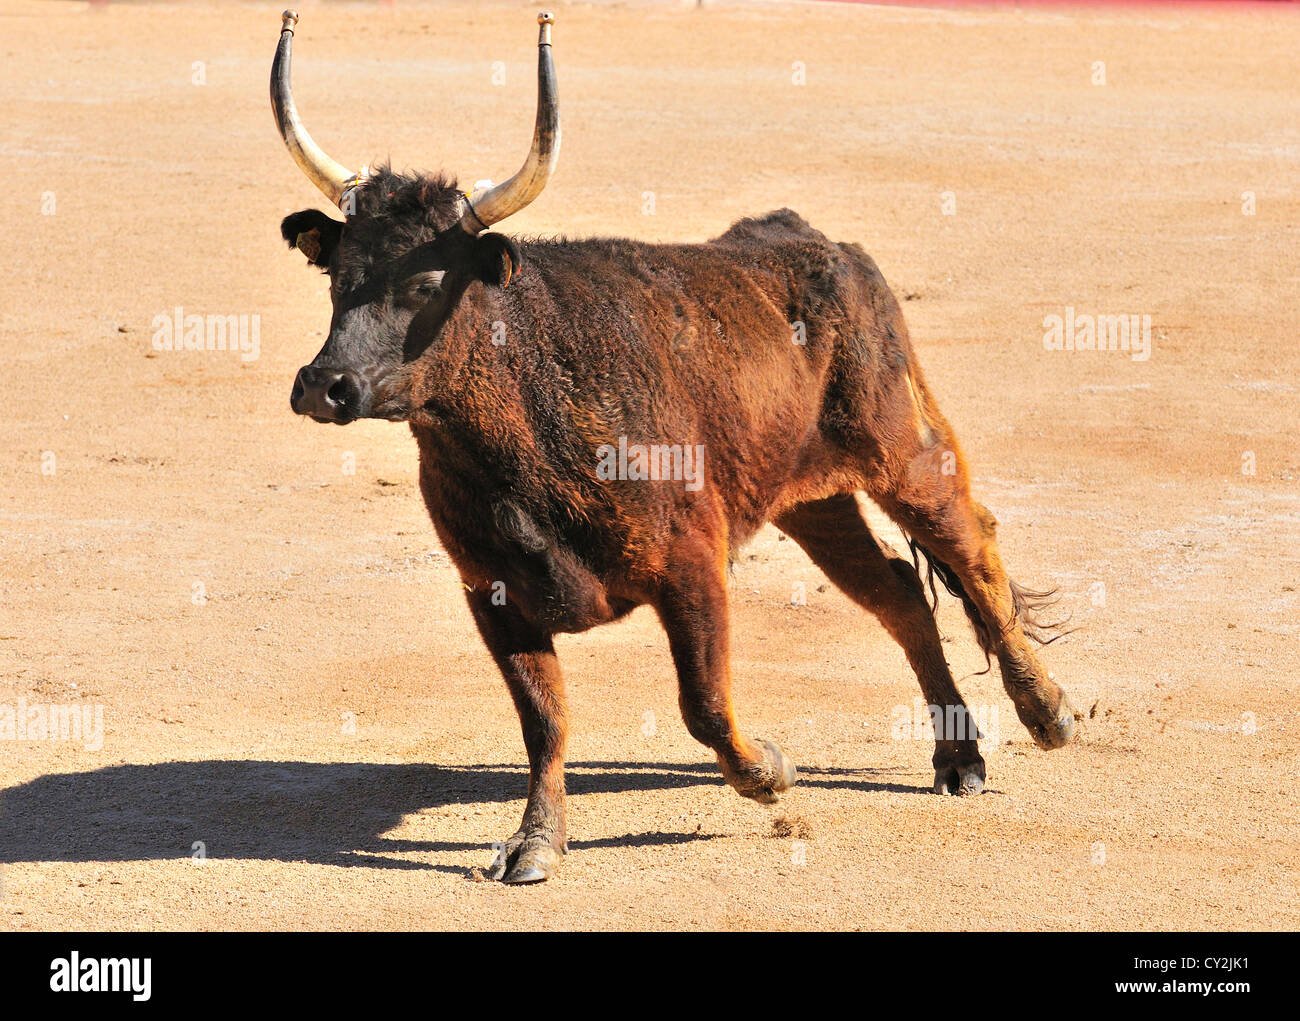 The bull enters   the ring in The Roman Amphitheater in Arles during the  Fete des Guardians , - Stock Image